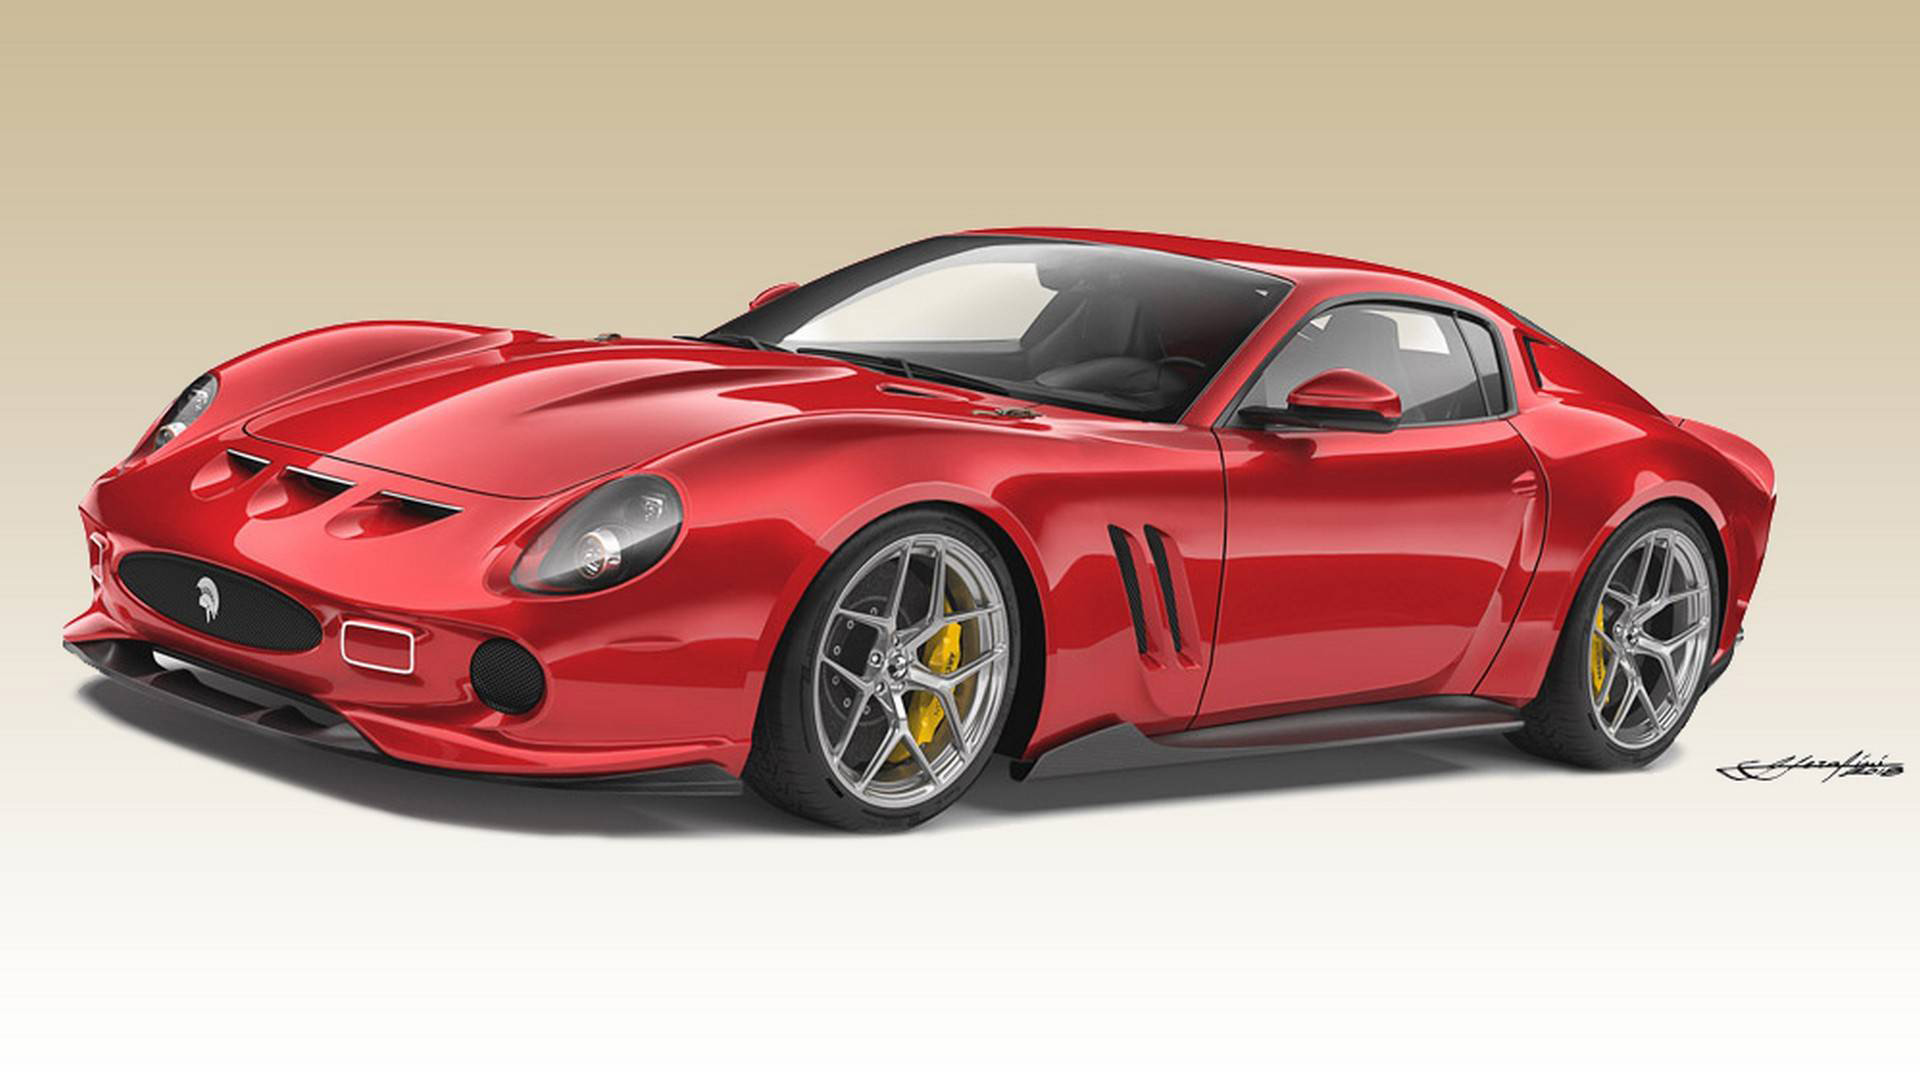 aresdesignferrari812superfast250gto